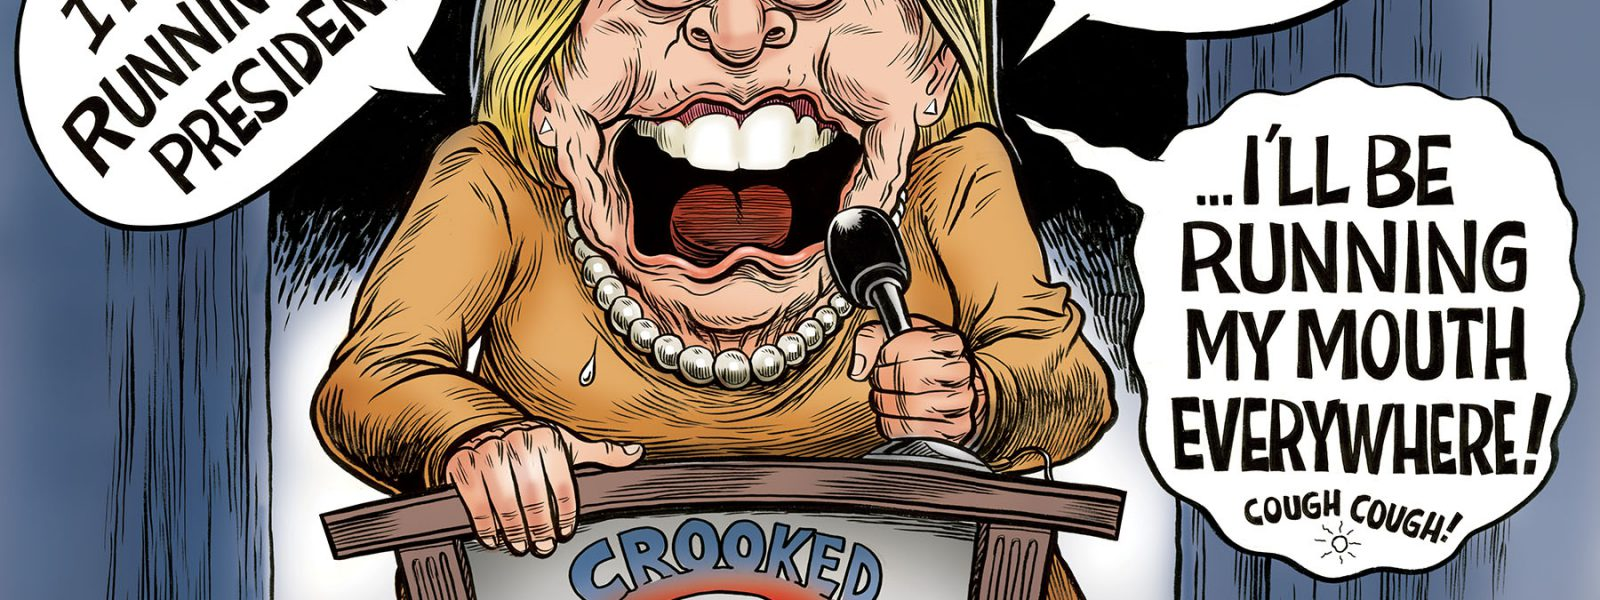 Hillary's Mouth 2020